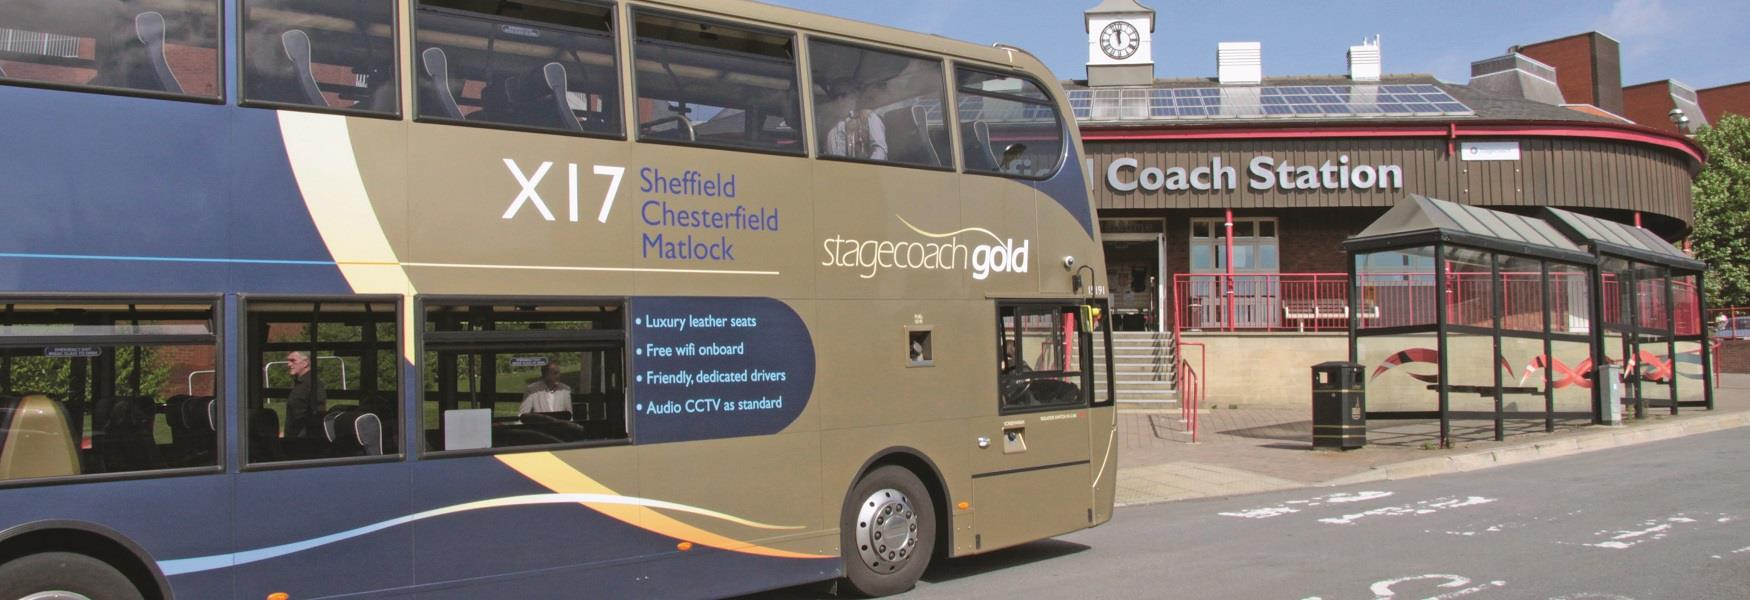 Bus arriving at Chesterfield coach station